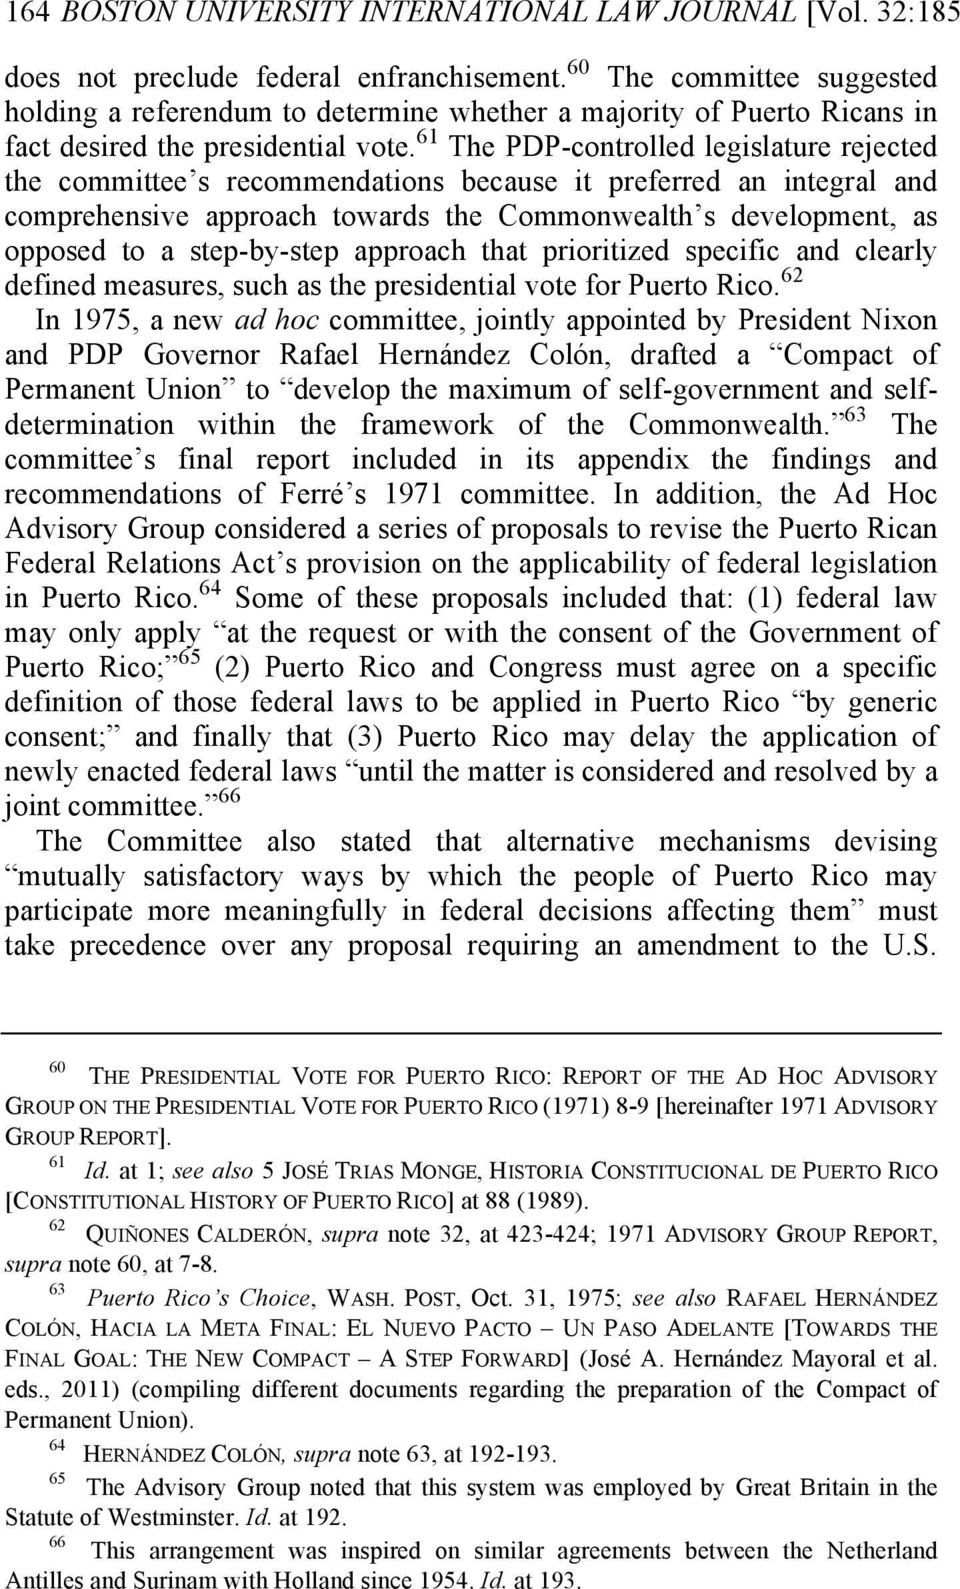 61 The PDP-controlled legislature rejected the committee s recommendations because it preferred an integral and comprehensive approach towards the Commonwealth s development, as opposed to a